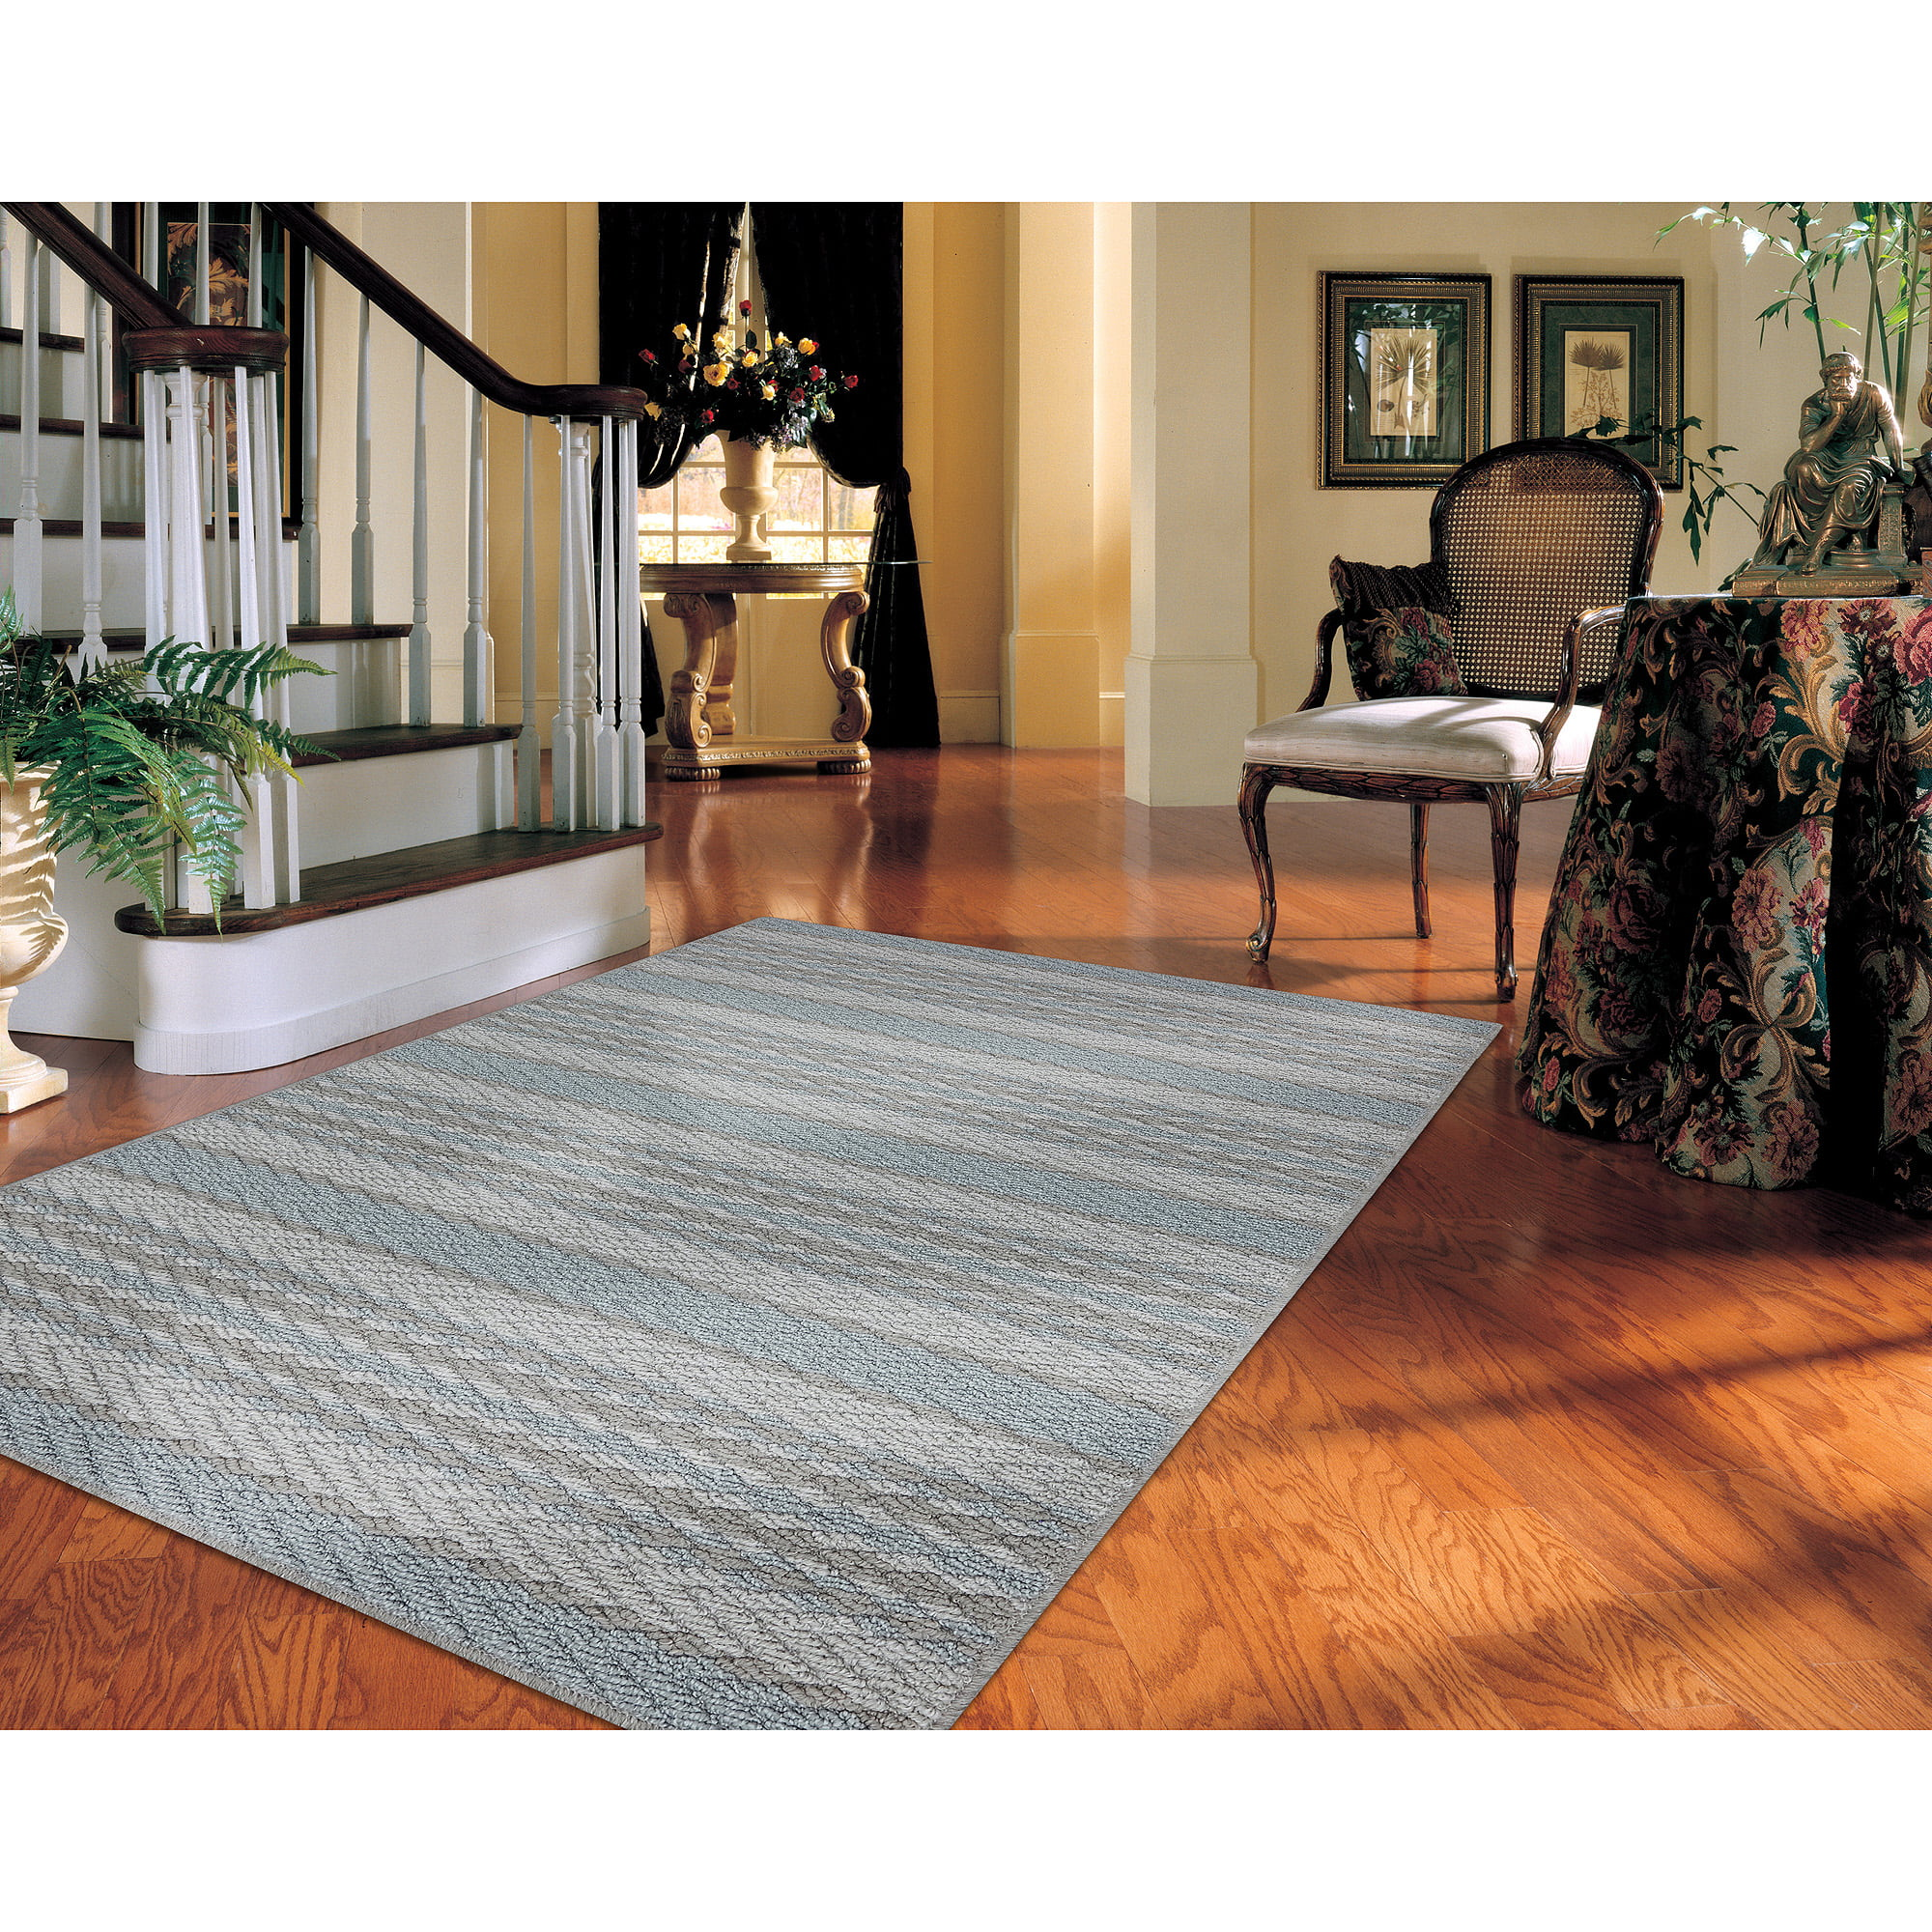 home decorators rugs sale - Home Decorators Outlet